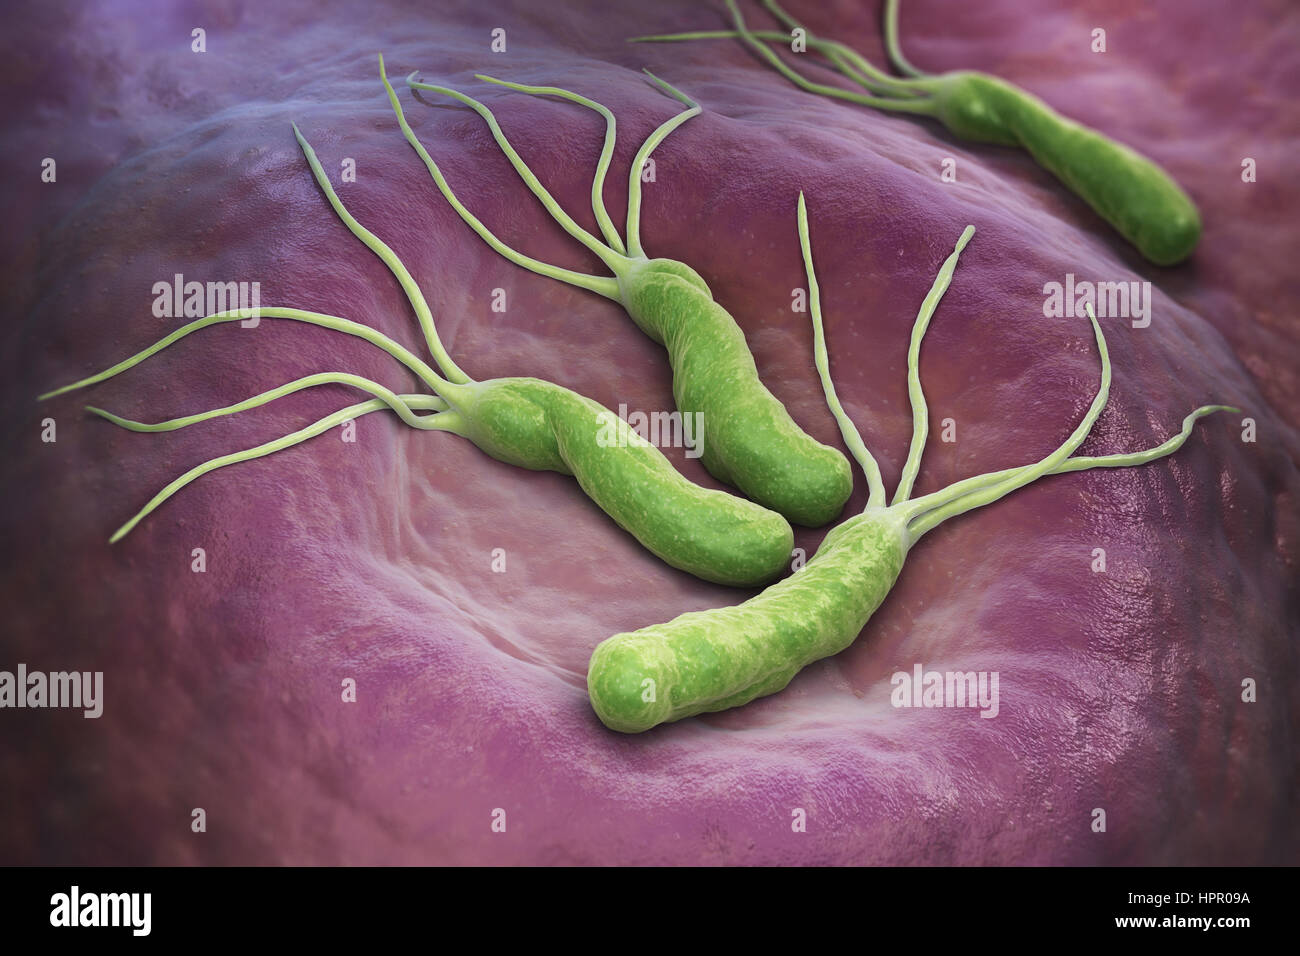 Helicobacter Pylori is a Gram-negative, microaerophilic bacterium found in the stomach. 3D illustration - Stock Image